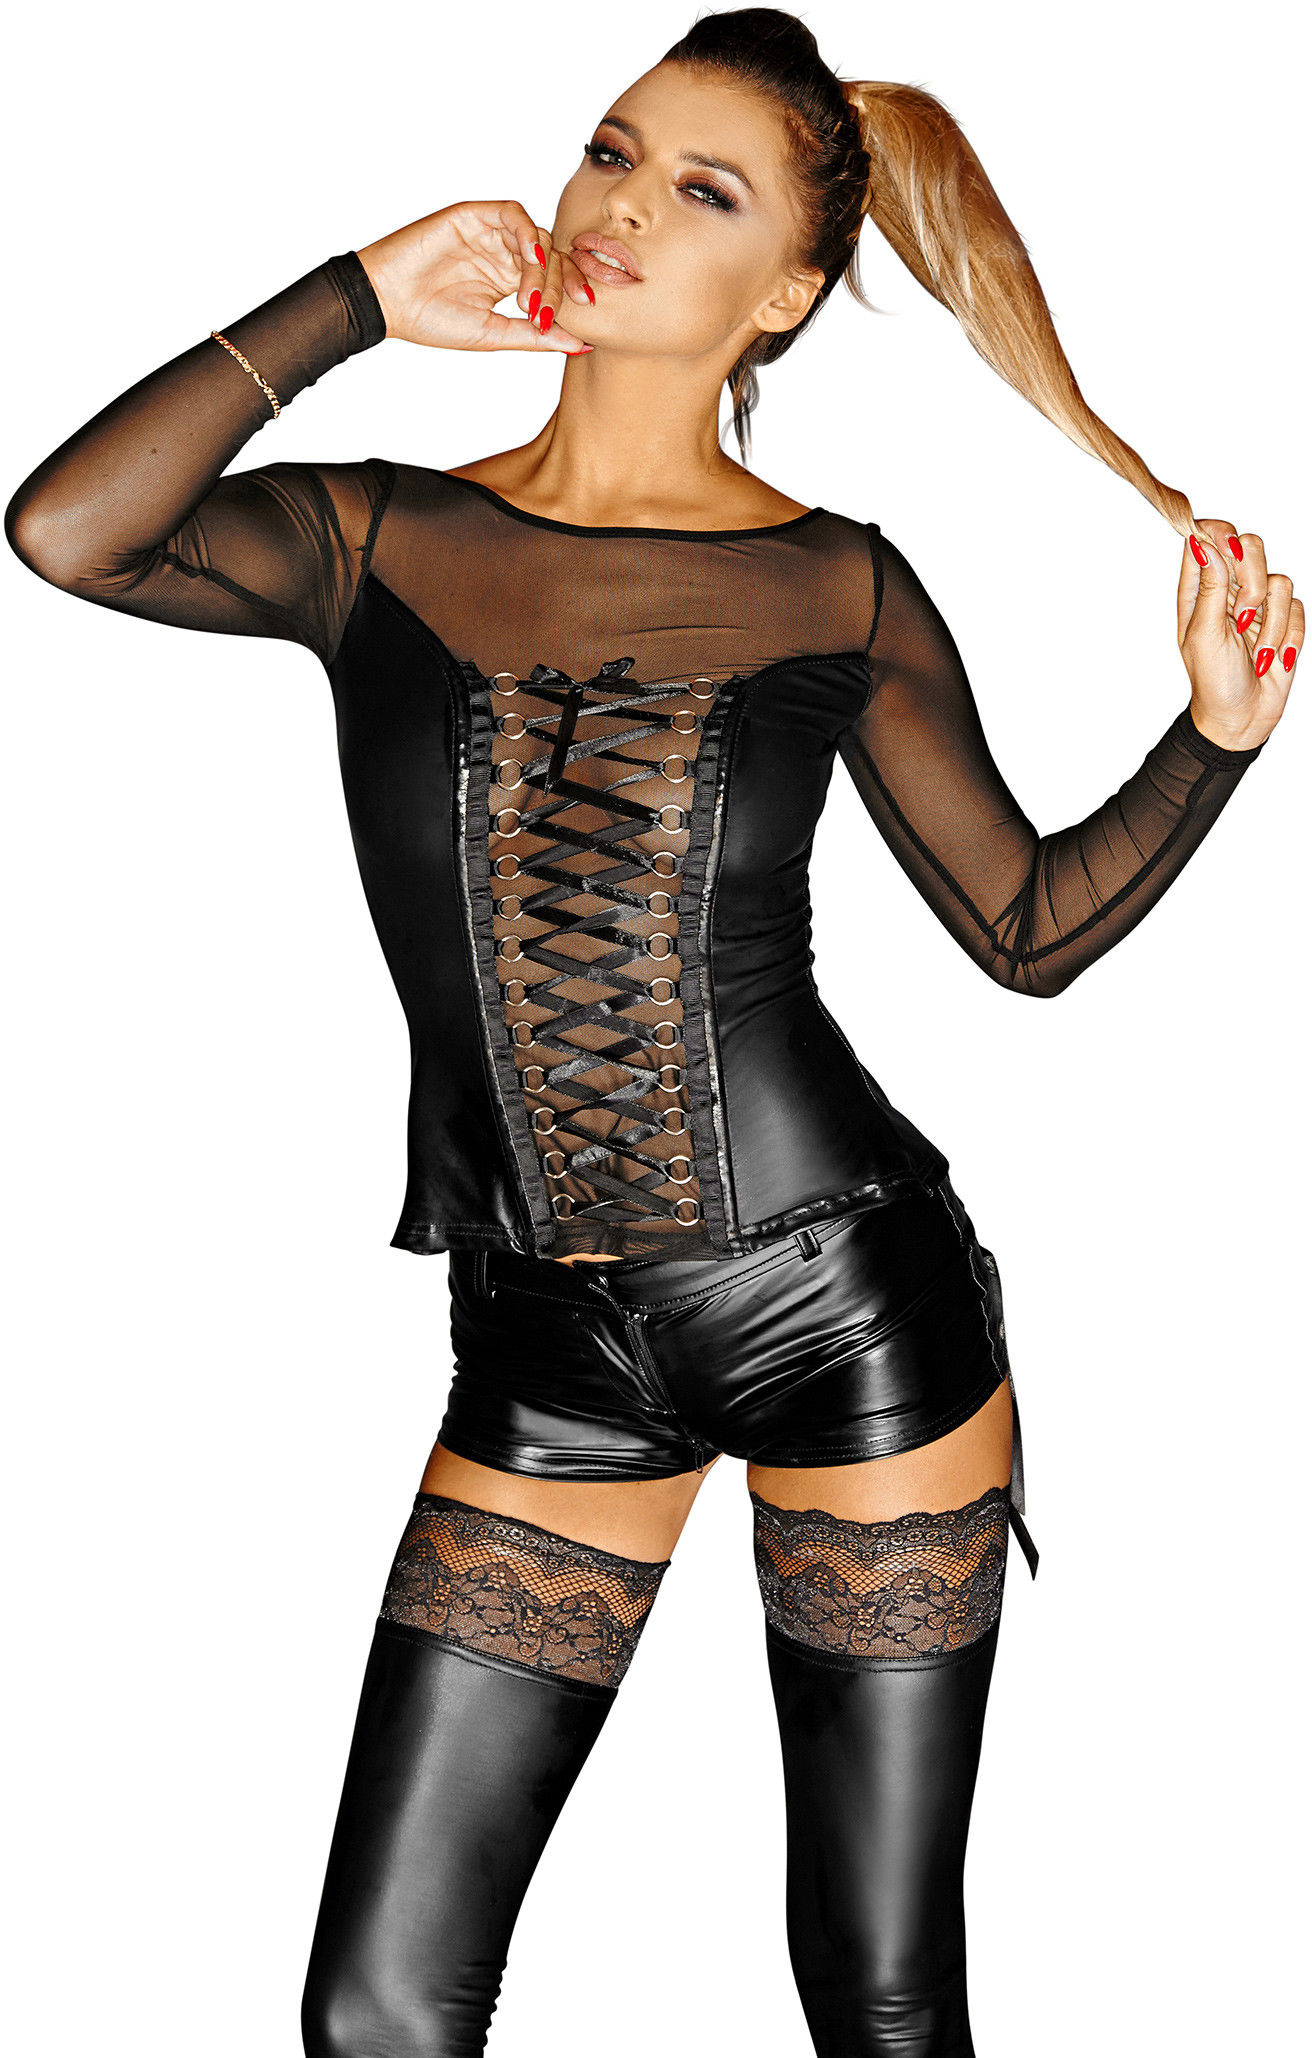 Noir Handmade F130 Powerwetlook Corsage Top with Long Sleeves, Lacing and Tull Inserts Narcissist S